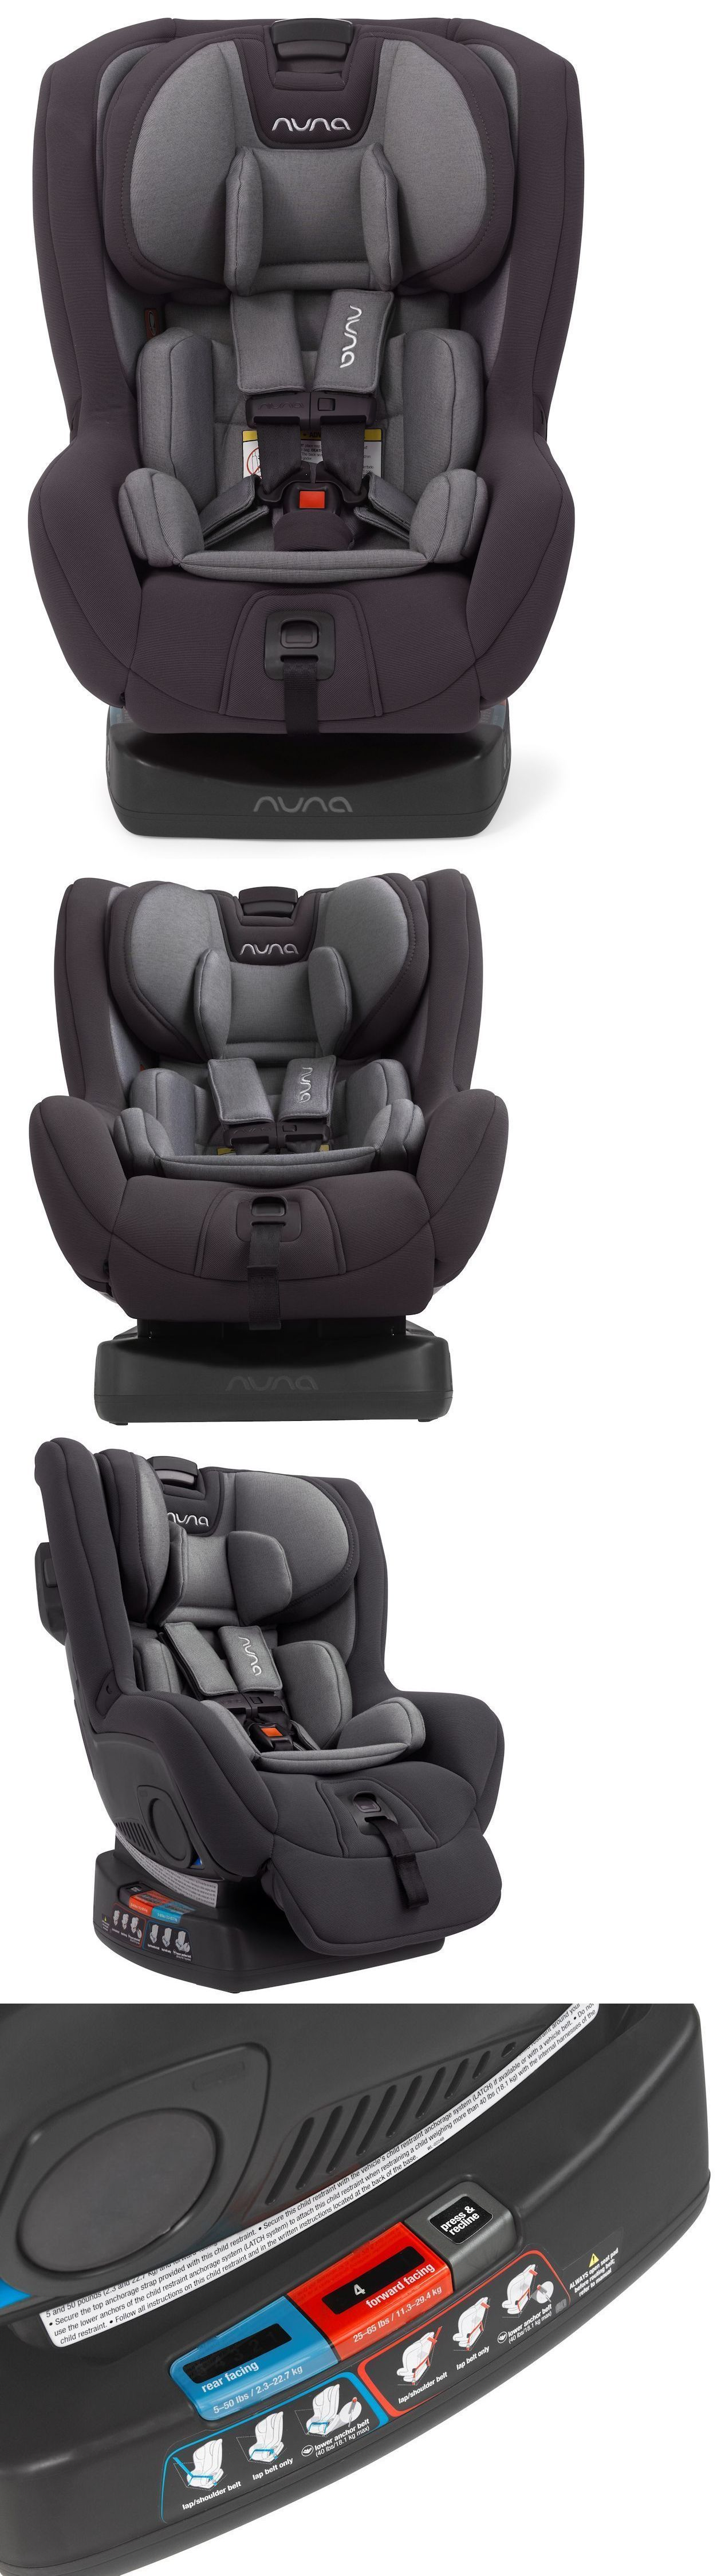 Other Baby Safety And Health 20436 Nuna Rava Child Convertible Car Seat Slate New BUY IT NOW ONLY 44999 On EBay